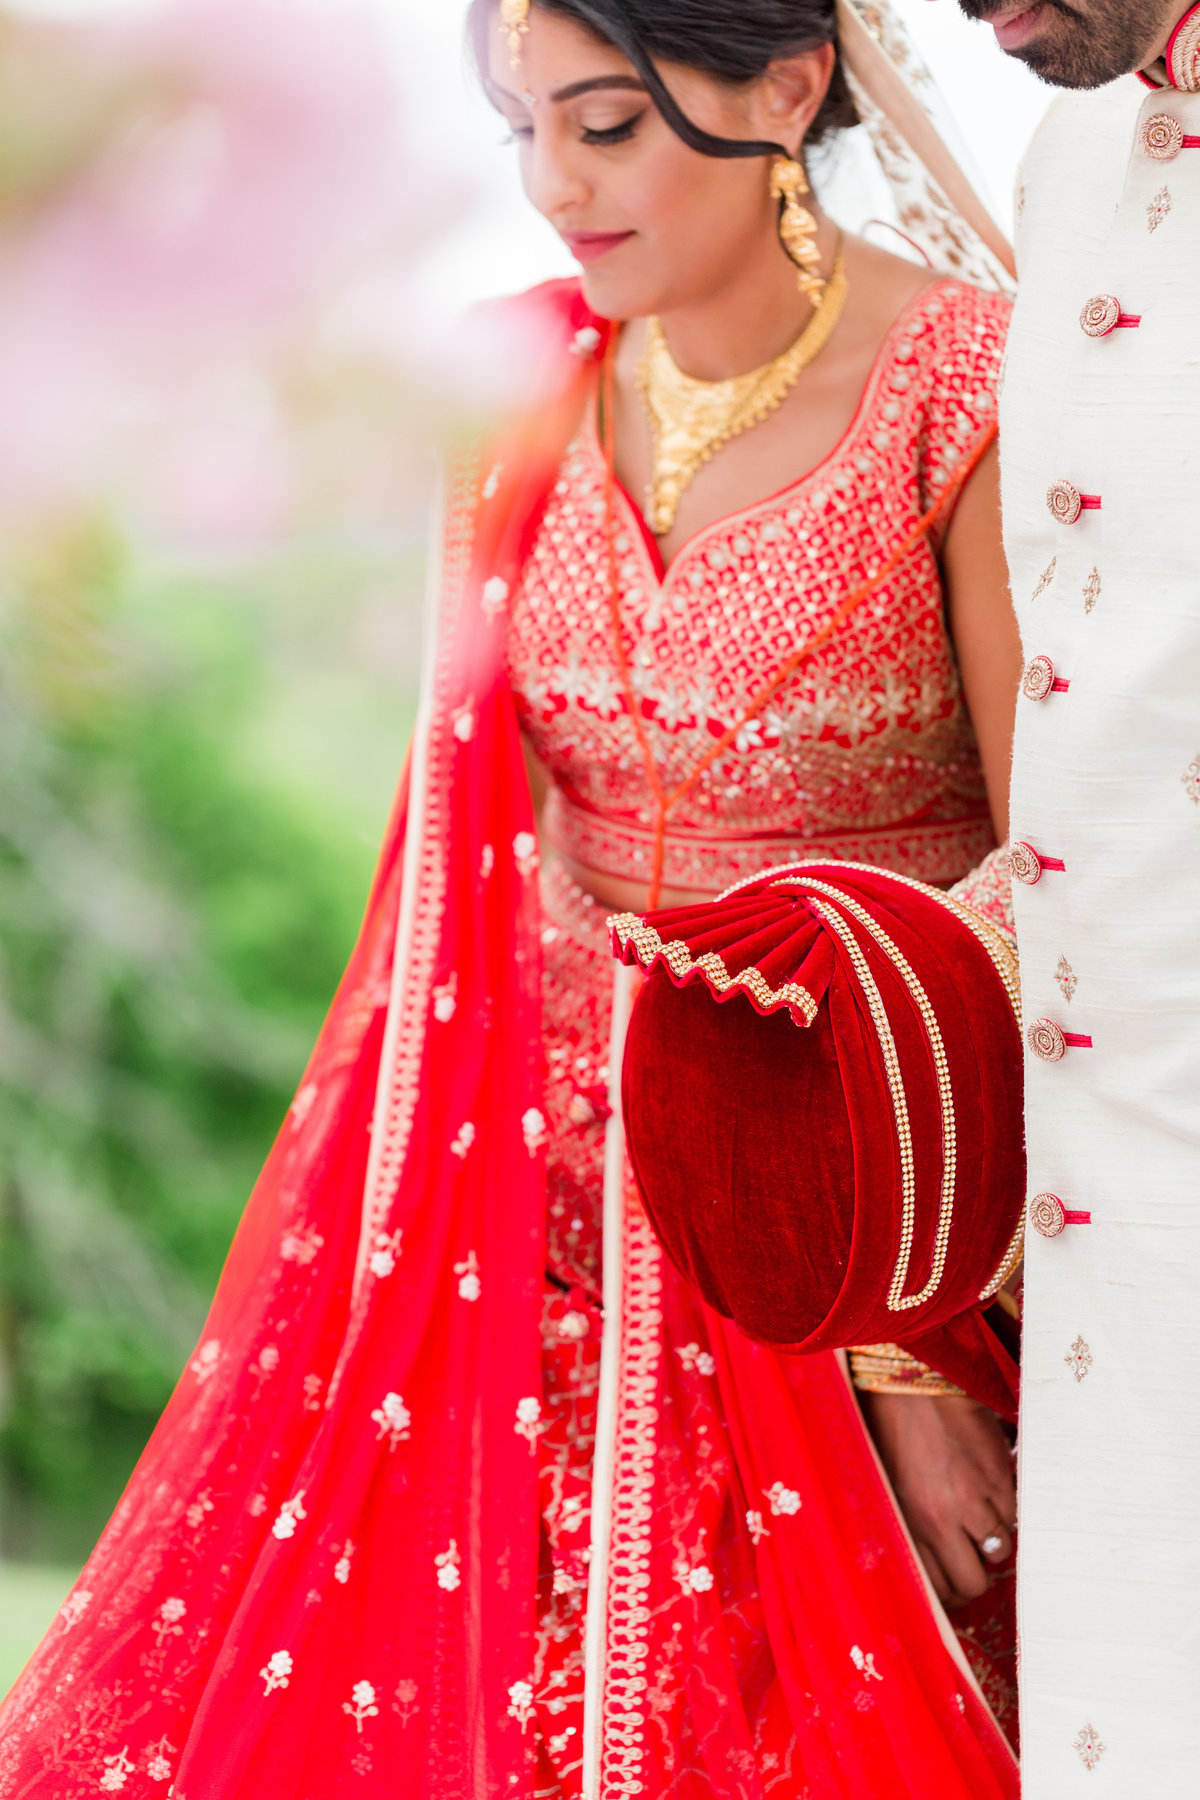 Lauren-Kearns-Hindu-Natirar-Wedding-246